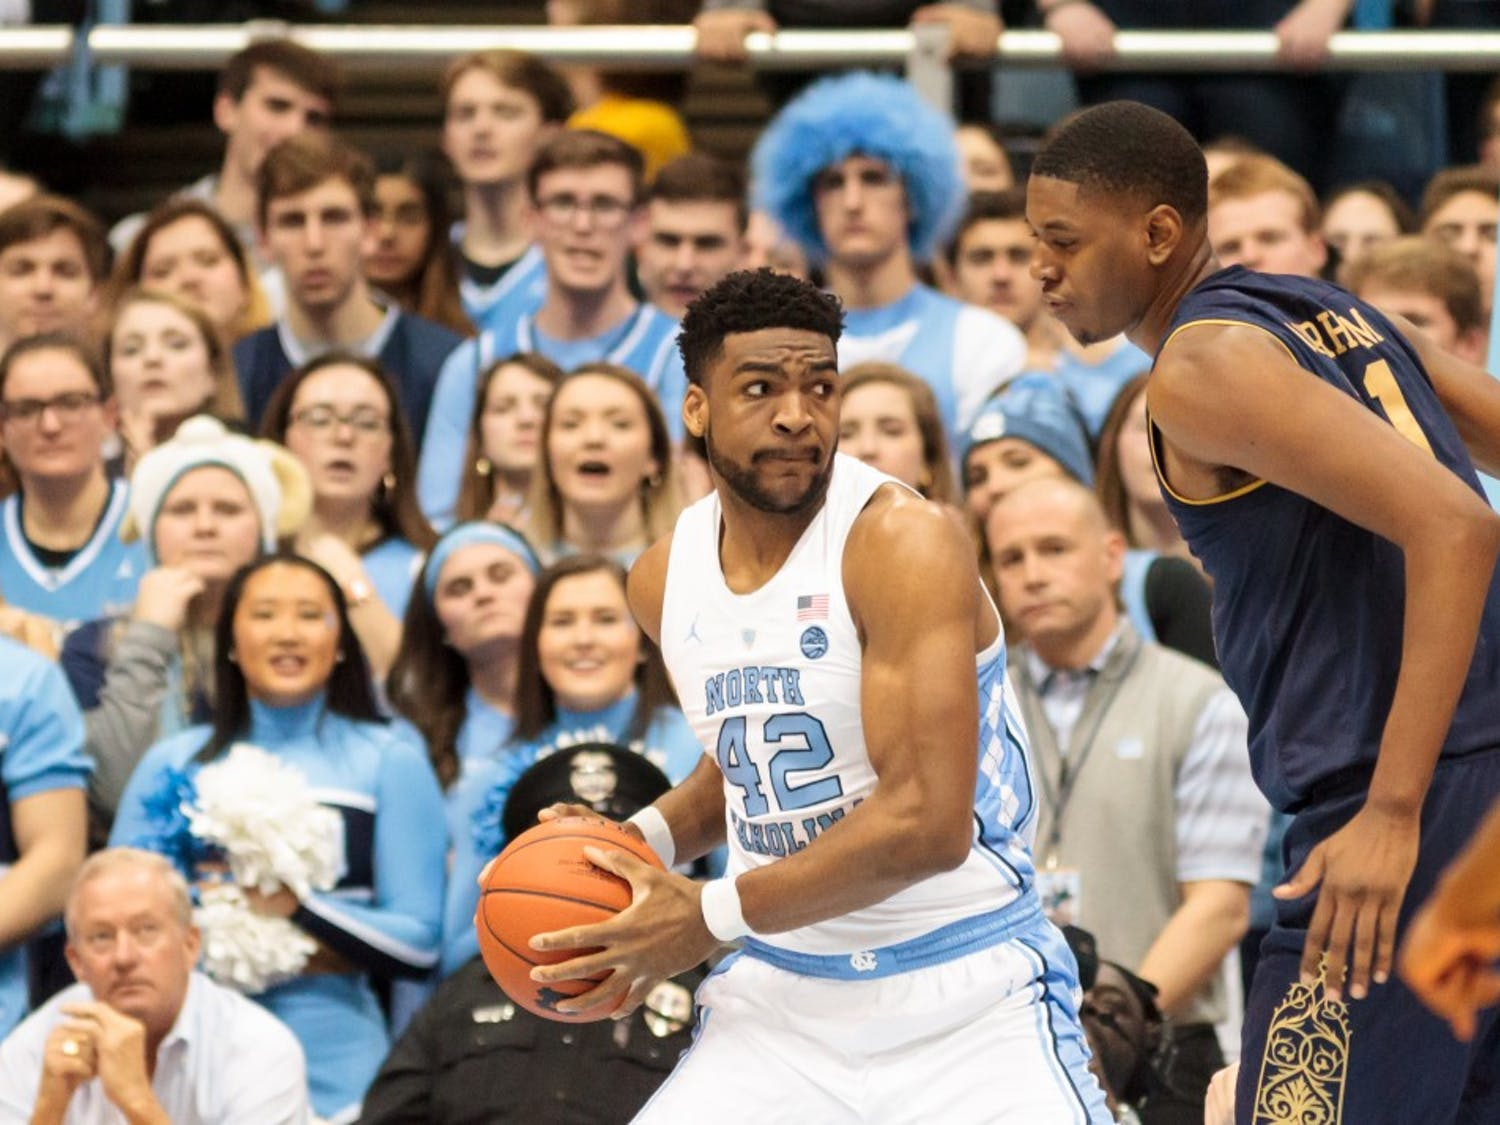 UNC forward Brandon Huffman (42) defends the ball from Notre Dame forward Juwan Durham (11) during the home men's basketball game in the Smith Center on Tuesday, Jan. 15, 2019. The final score was 75-69.